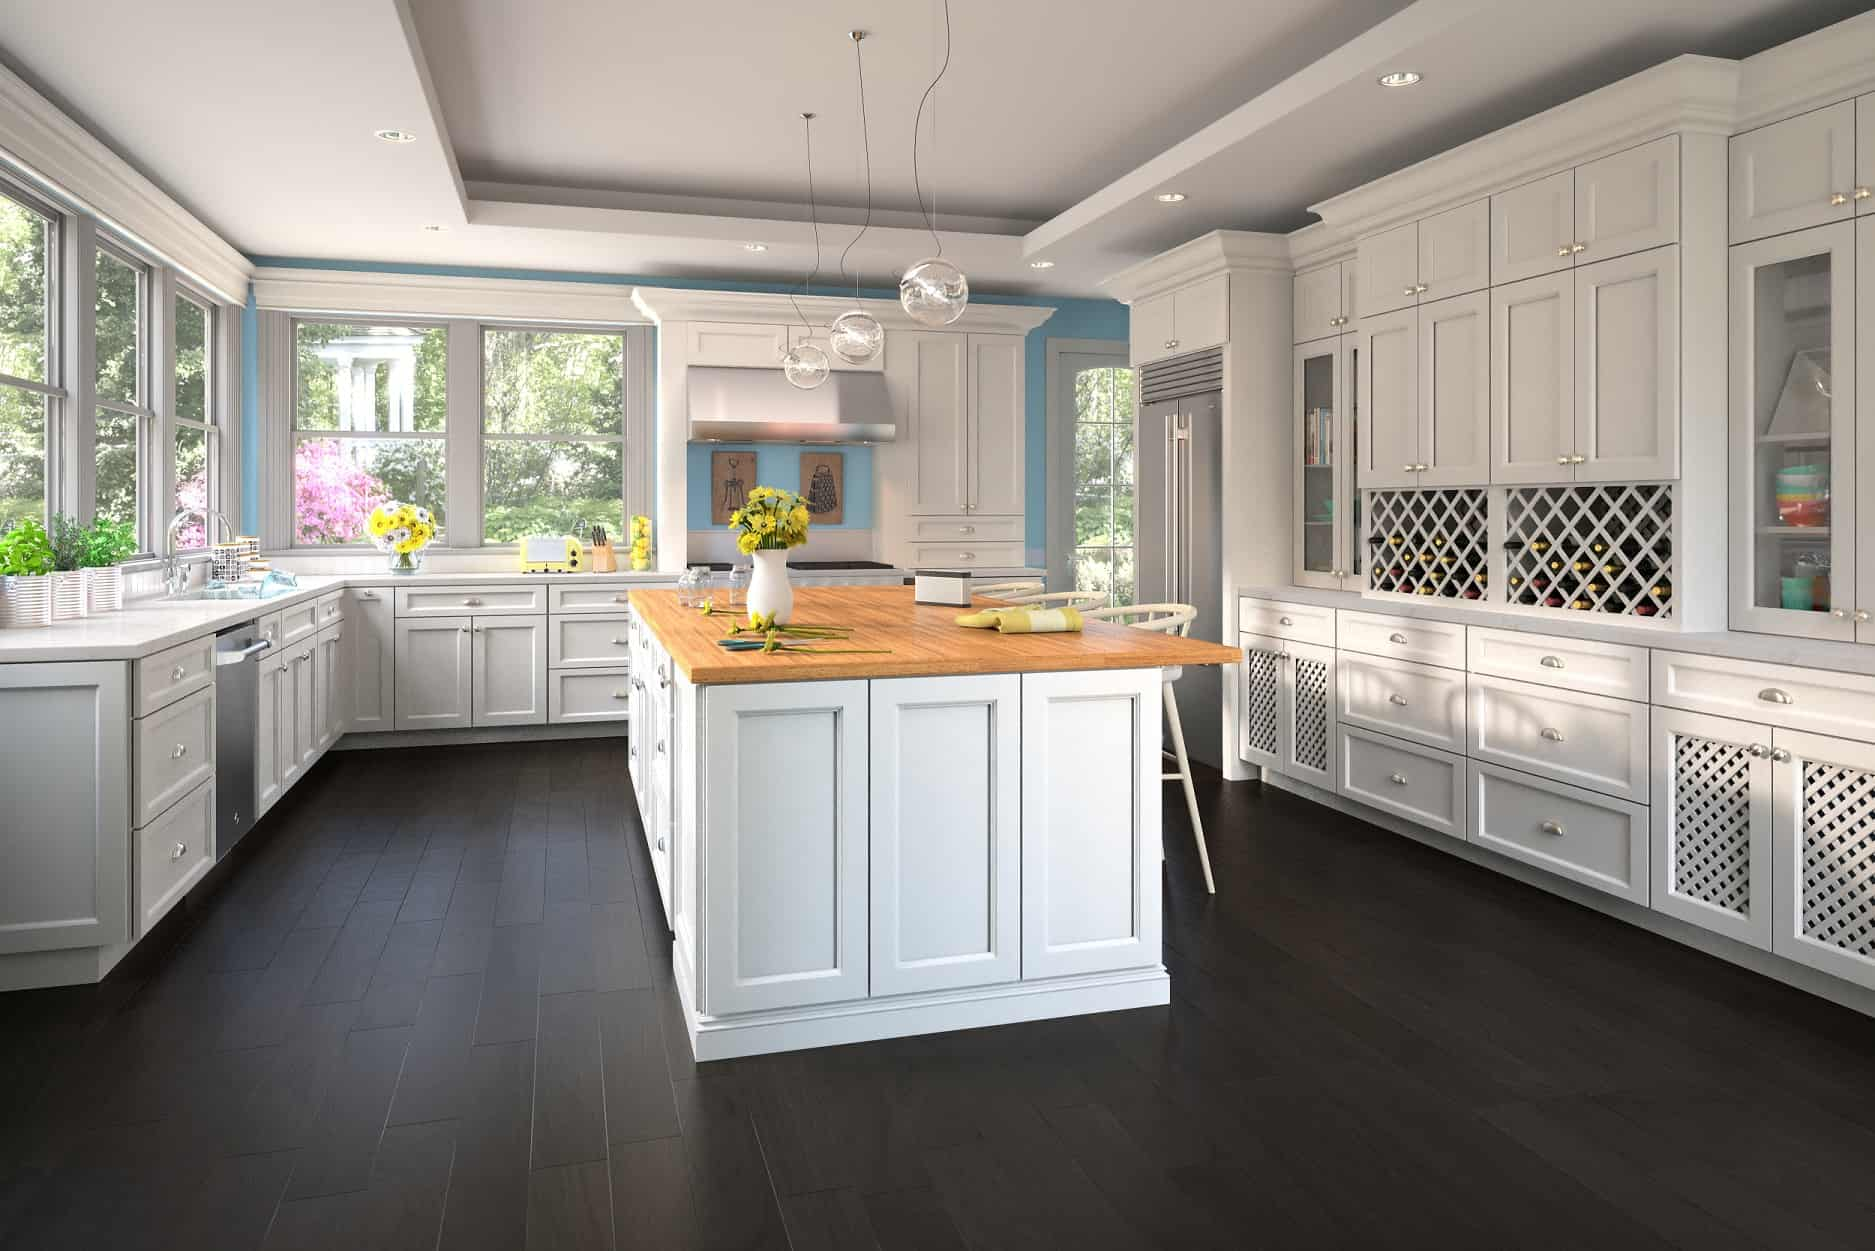 what is the potential cost to refinish your old kitchen cabinets refinish kitchen cabinets